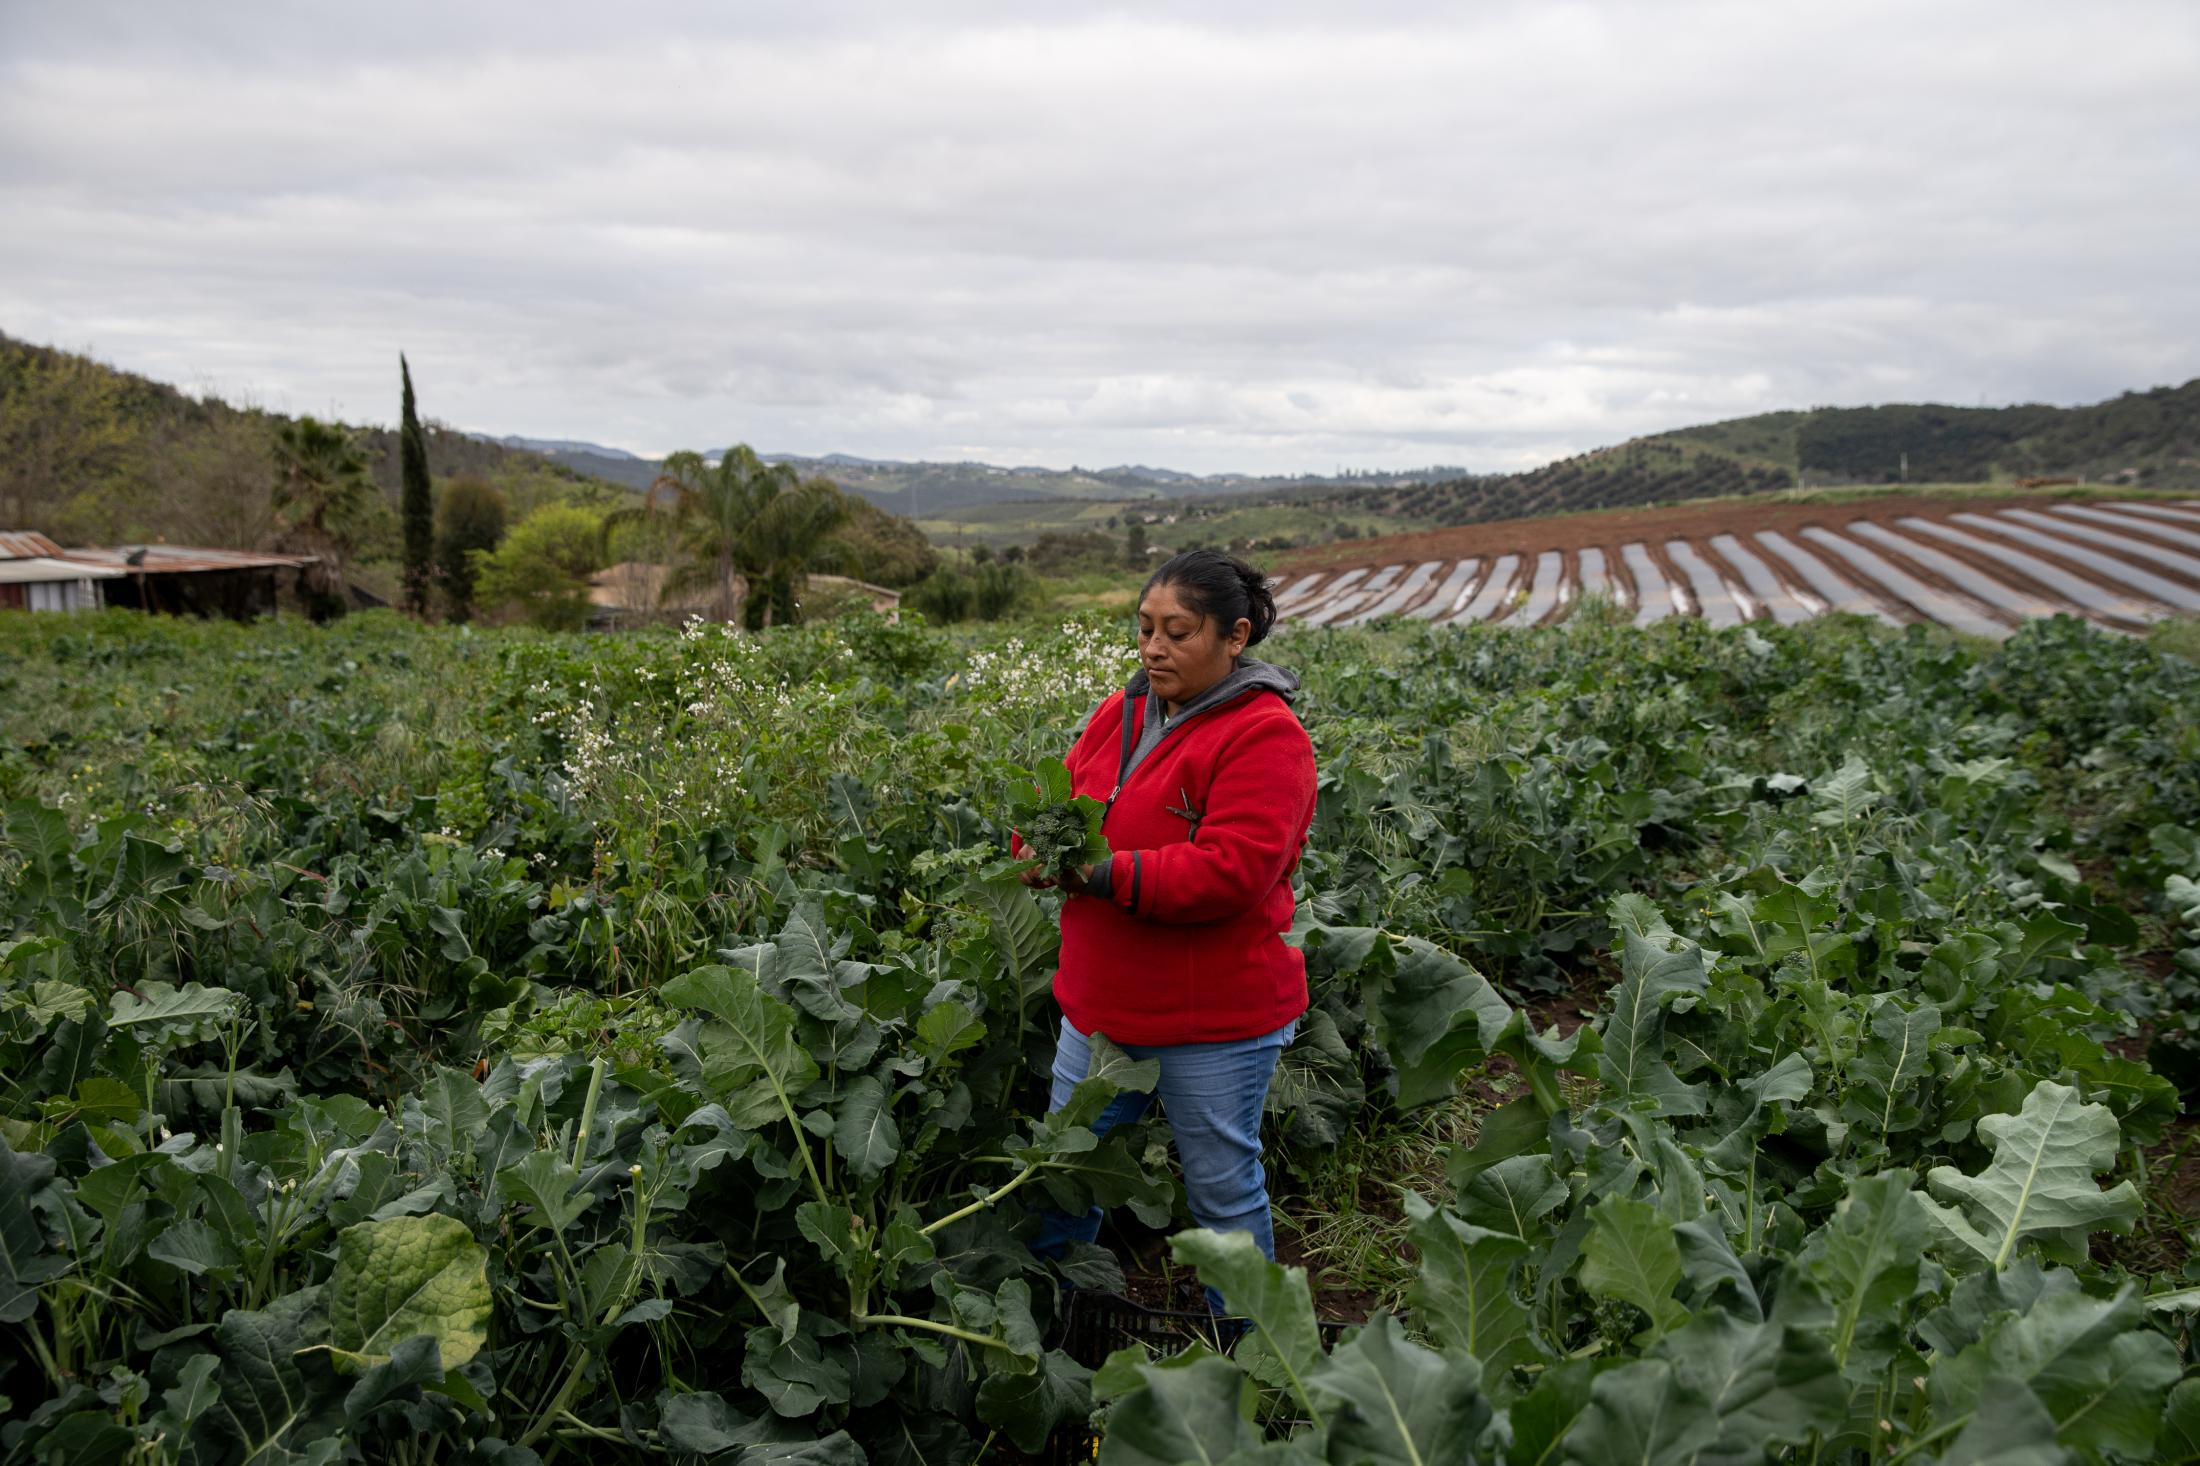 Maria picks broccoli at Stehly Farms Organics located in Valley Center, California on March 25, 2020. Maria who is from Oaxaca, Mexico lives on the property and has been working at the farm for seven years. She says since the Coronavirus outbreak in the United States the demand for fruit and vegetables has been high but it has not effected her work.